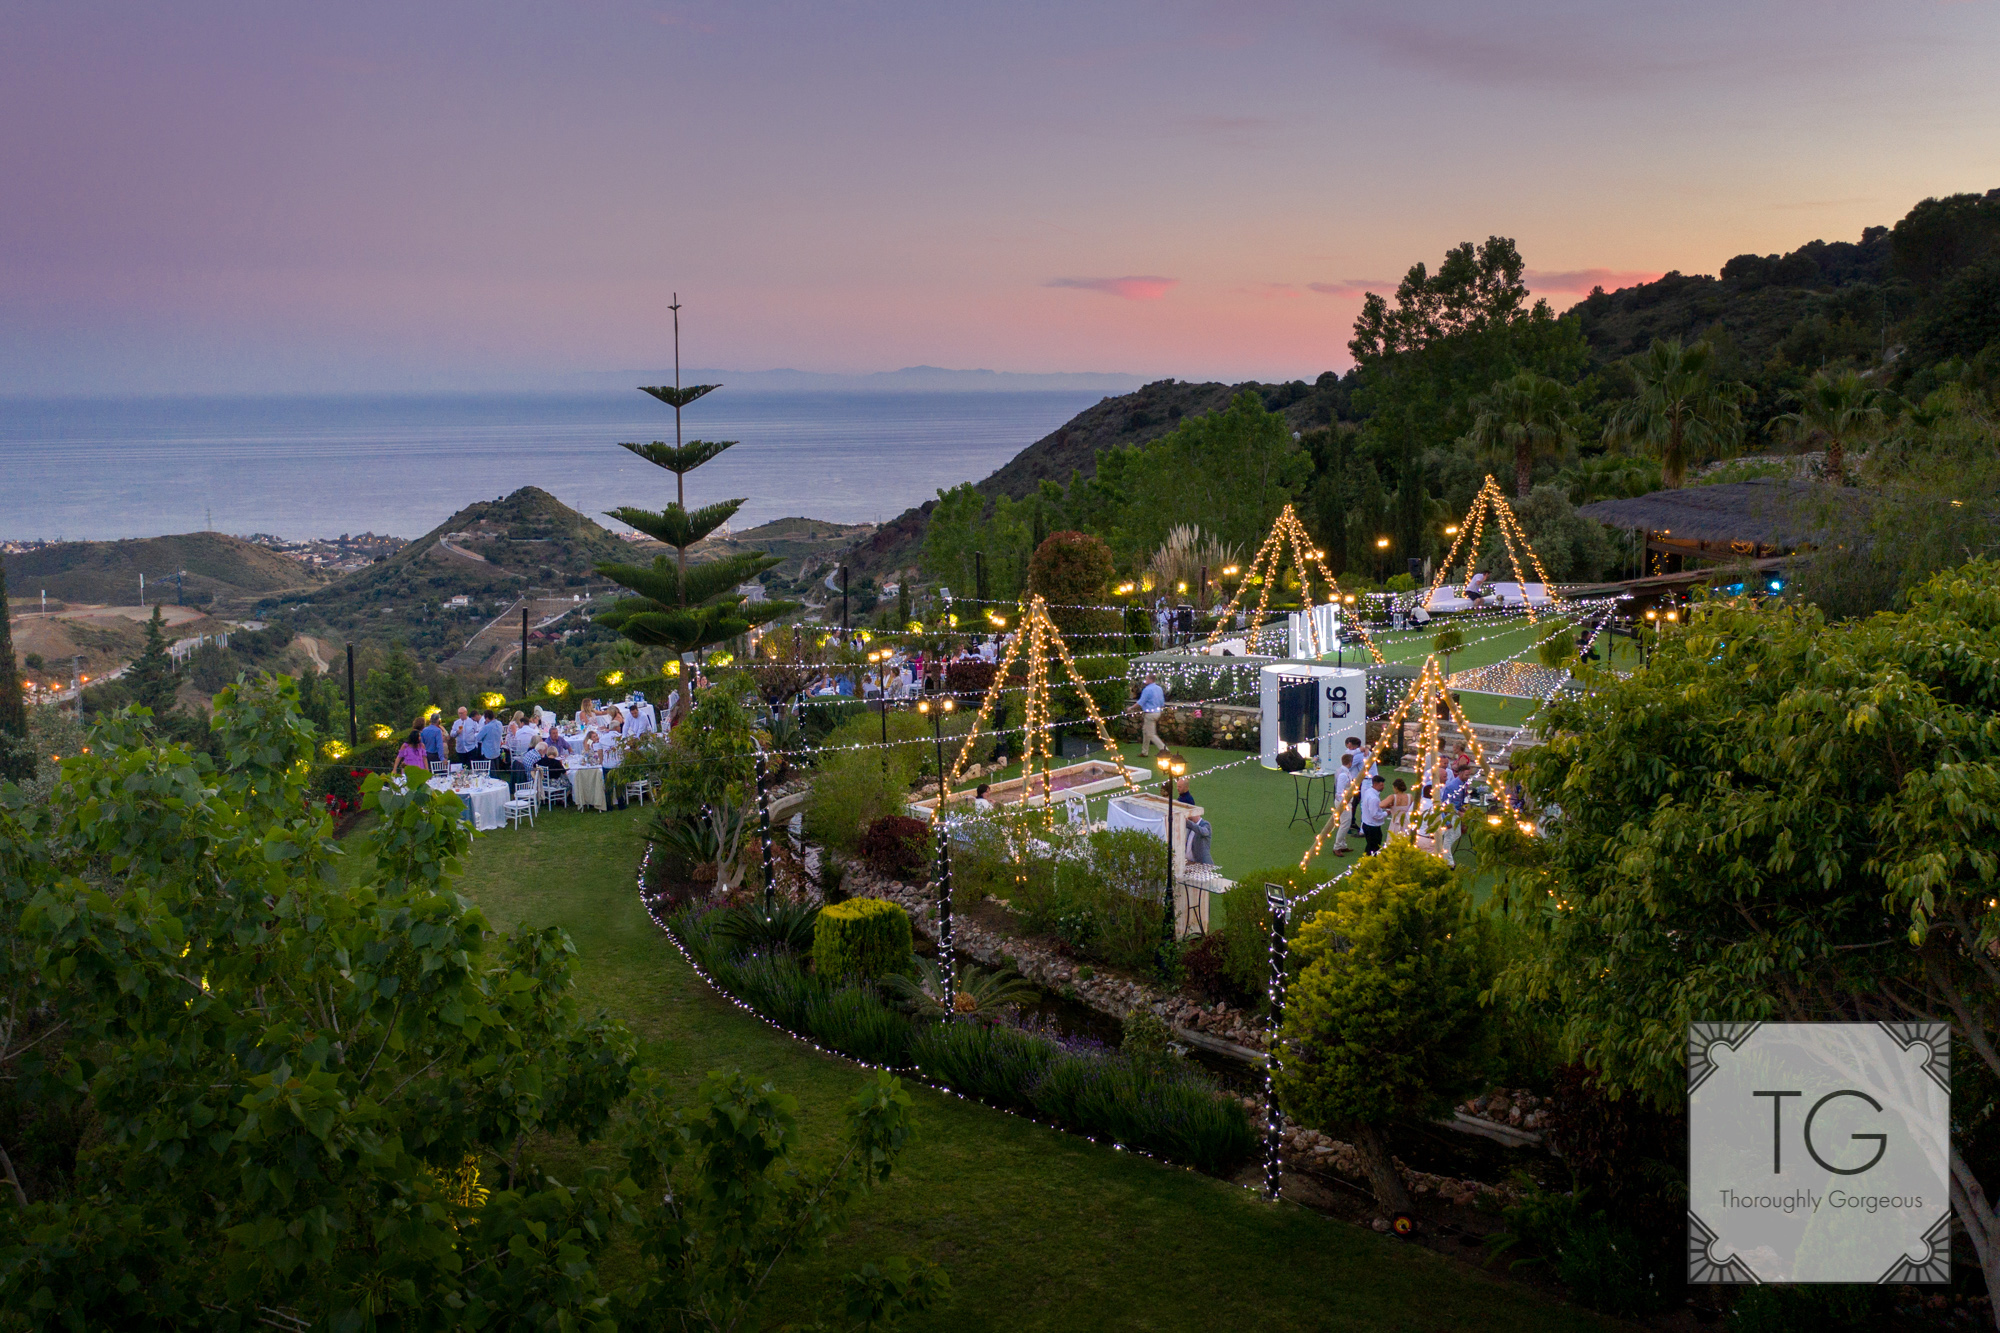 The Finca and its fairy-lights at dusk